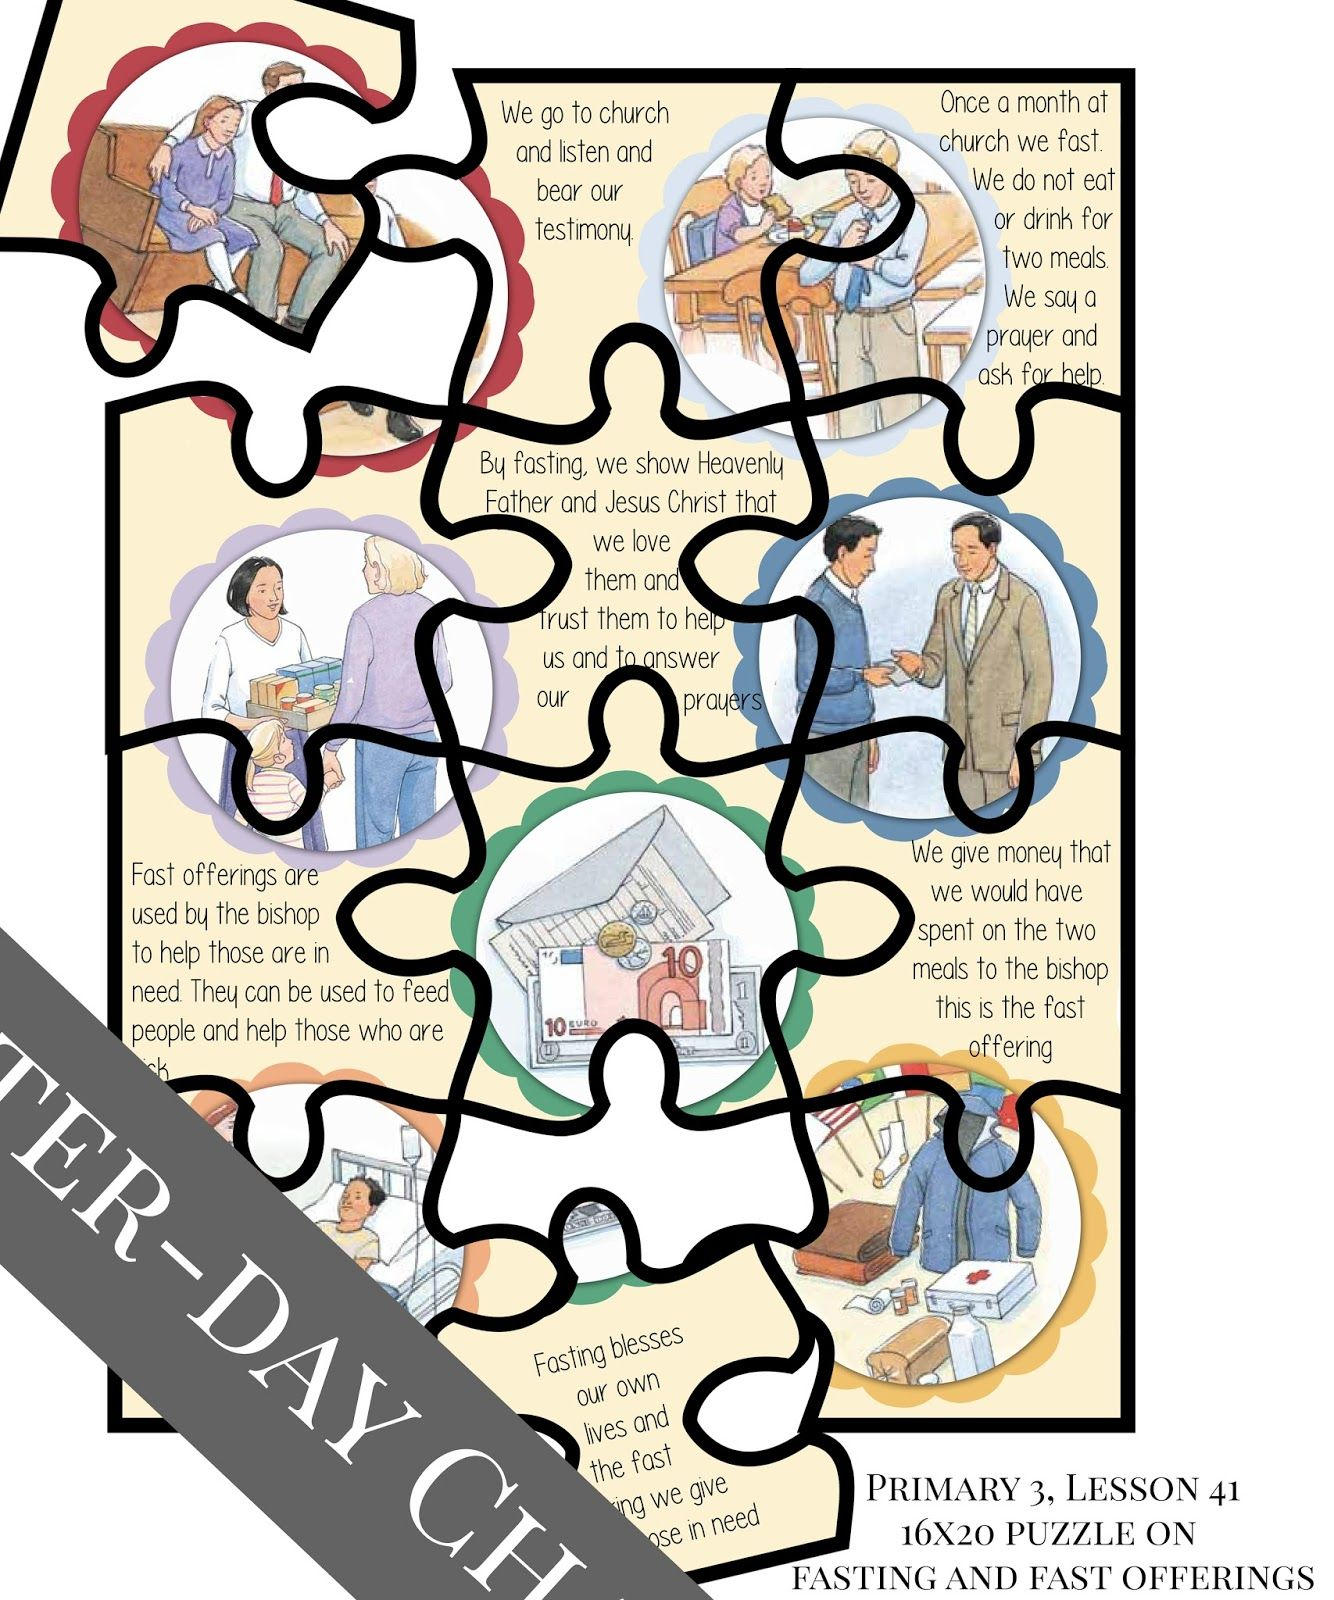 Latter Day Chatter Primary 3 Lesson 41 Large Puzzle 16x20 Inches